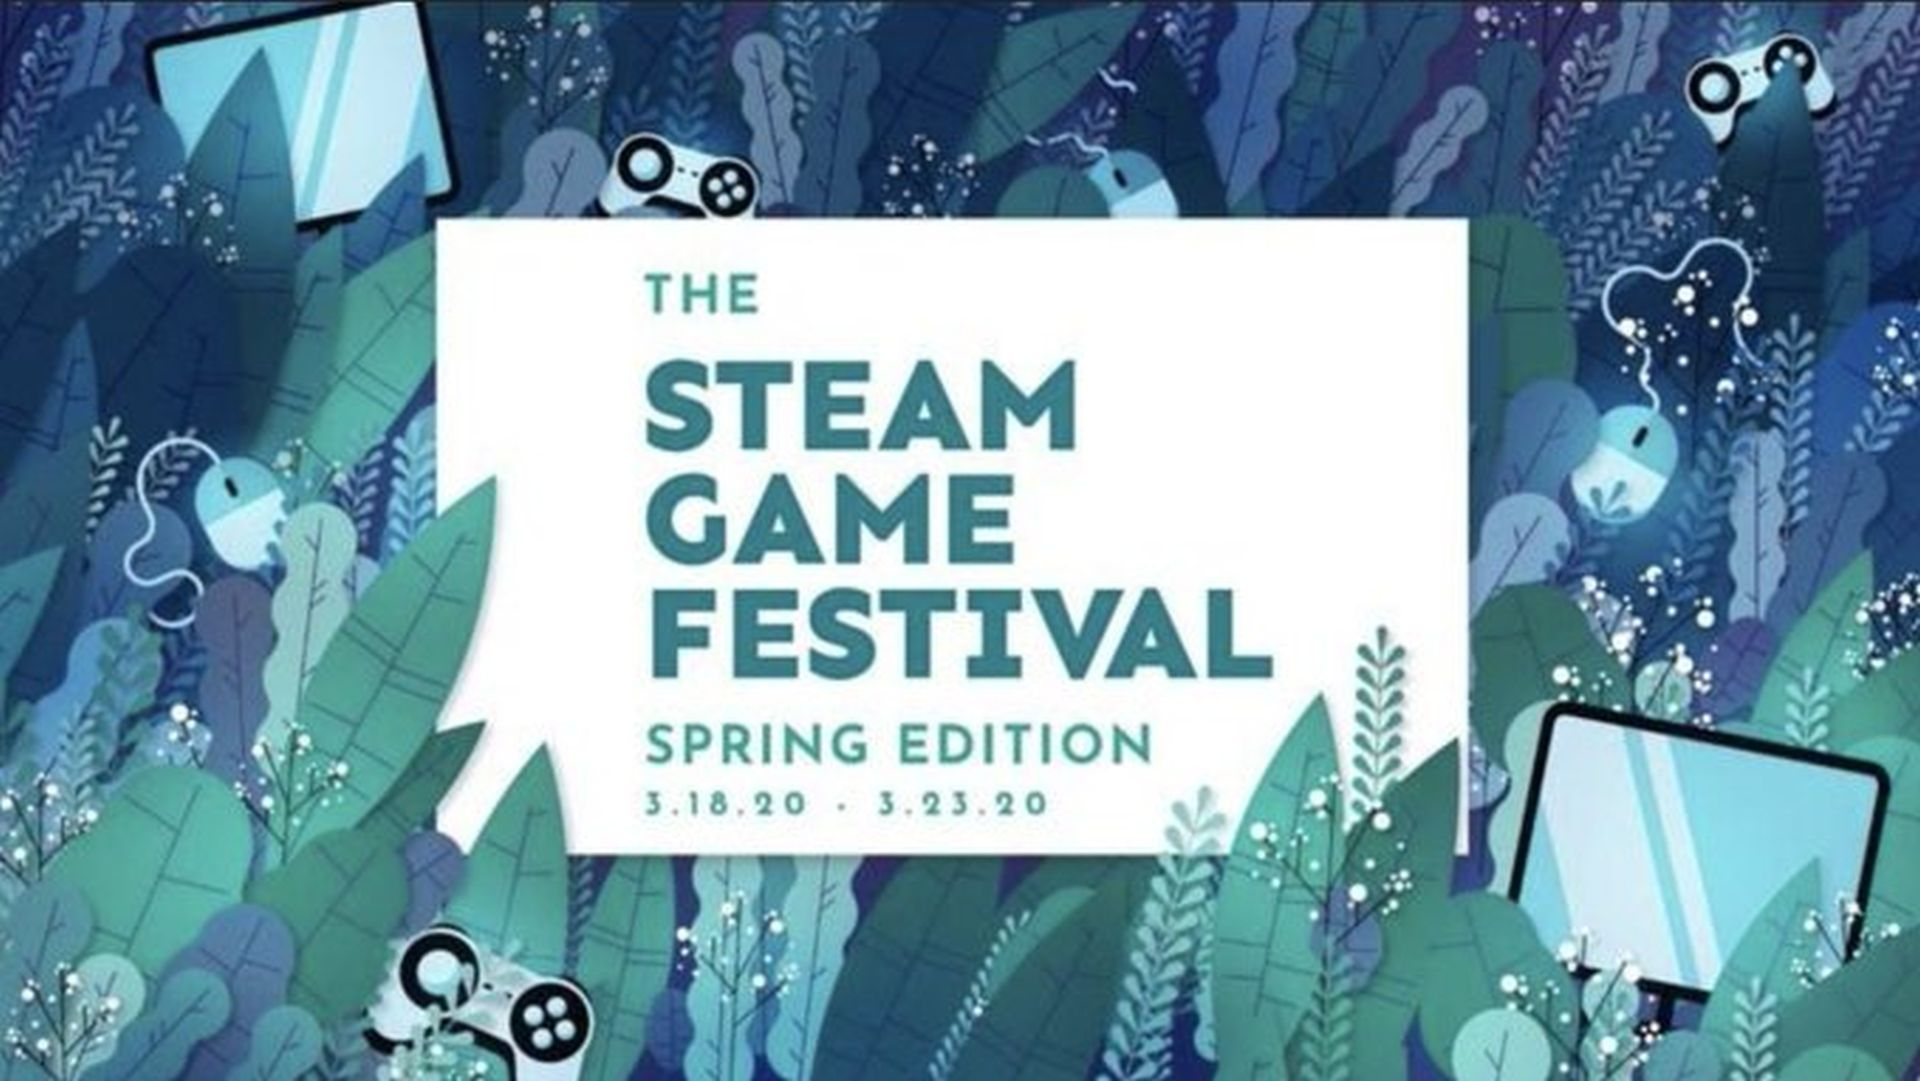 Steam Game Festival Spring Edition